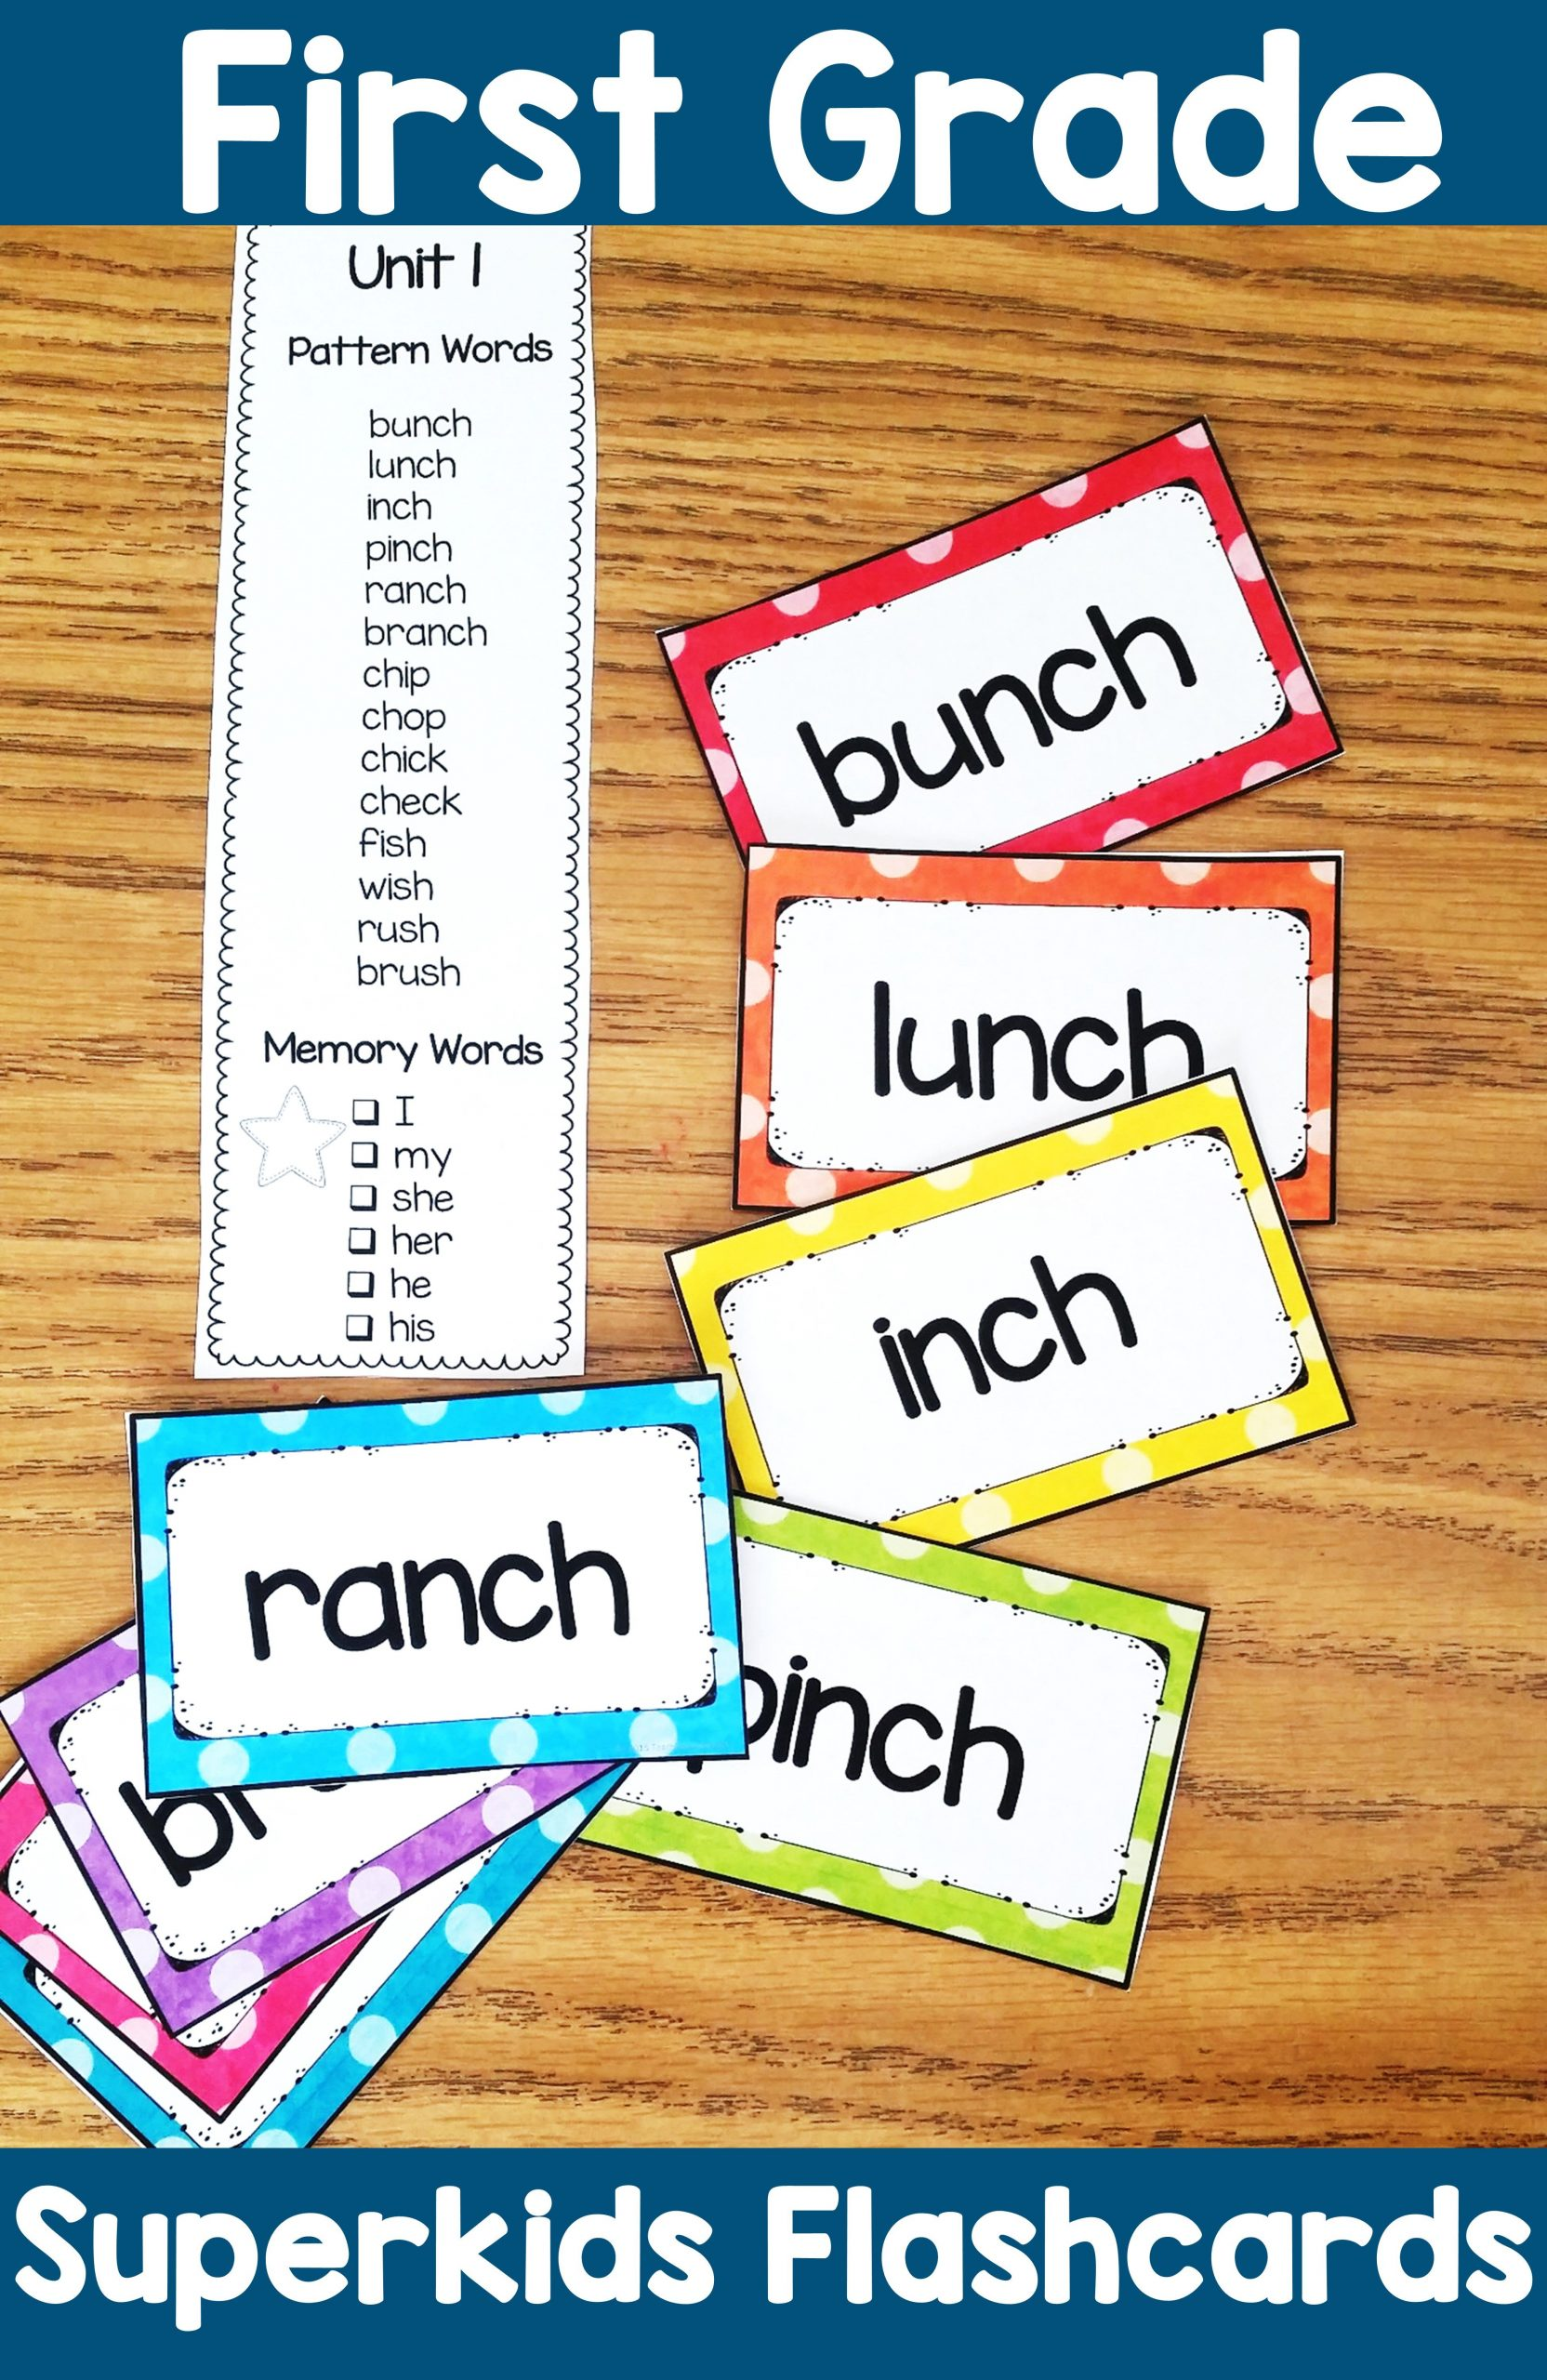 Superkids Reading Program Worksheets First Grade Superkids Flash Cards & Word List